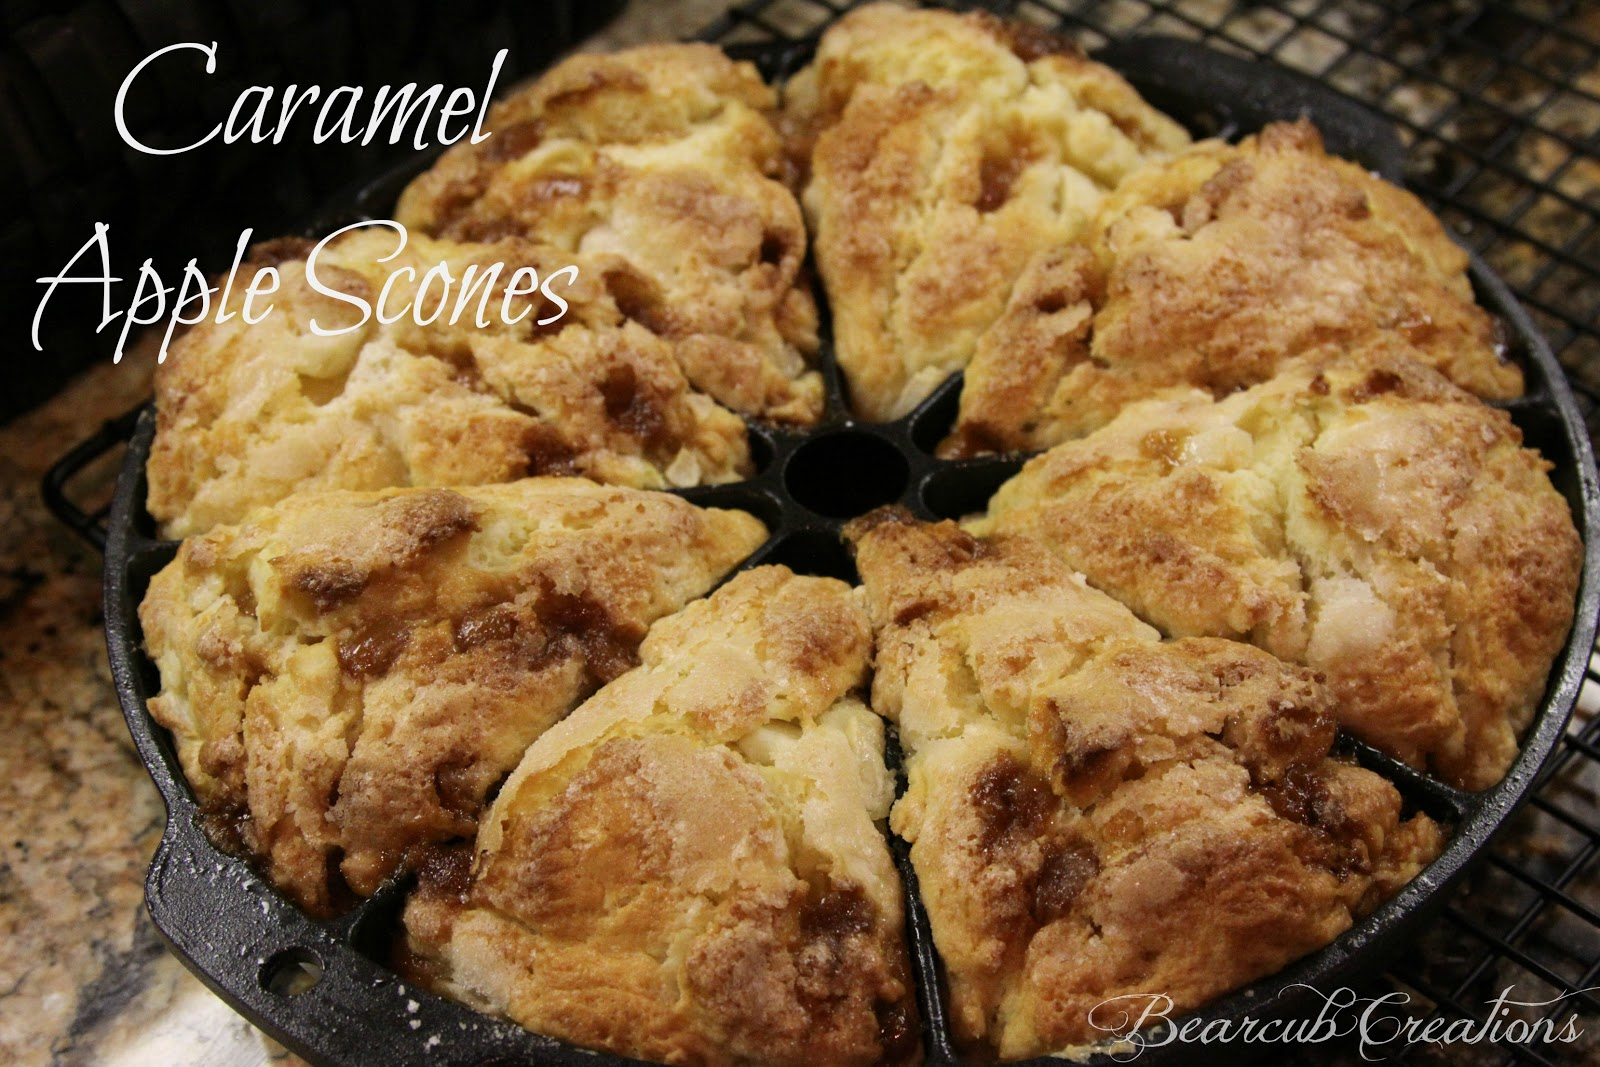 Bearcub Creations: Caramel Apple Scones